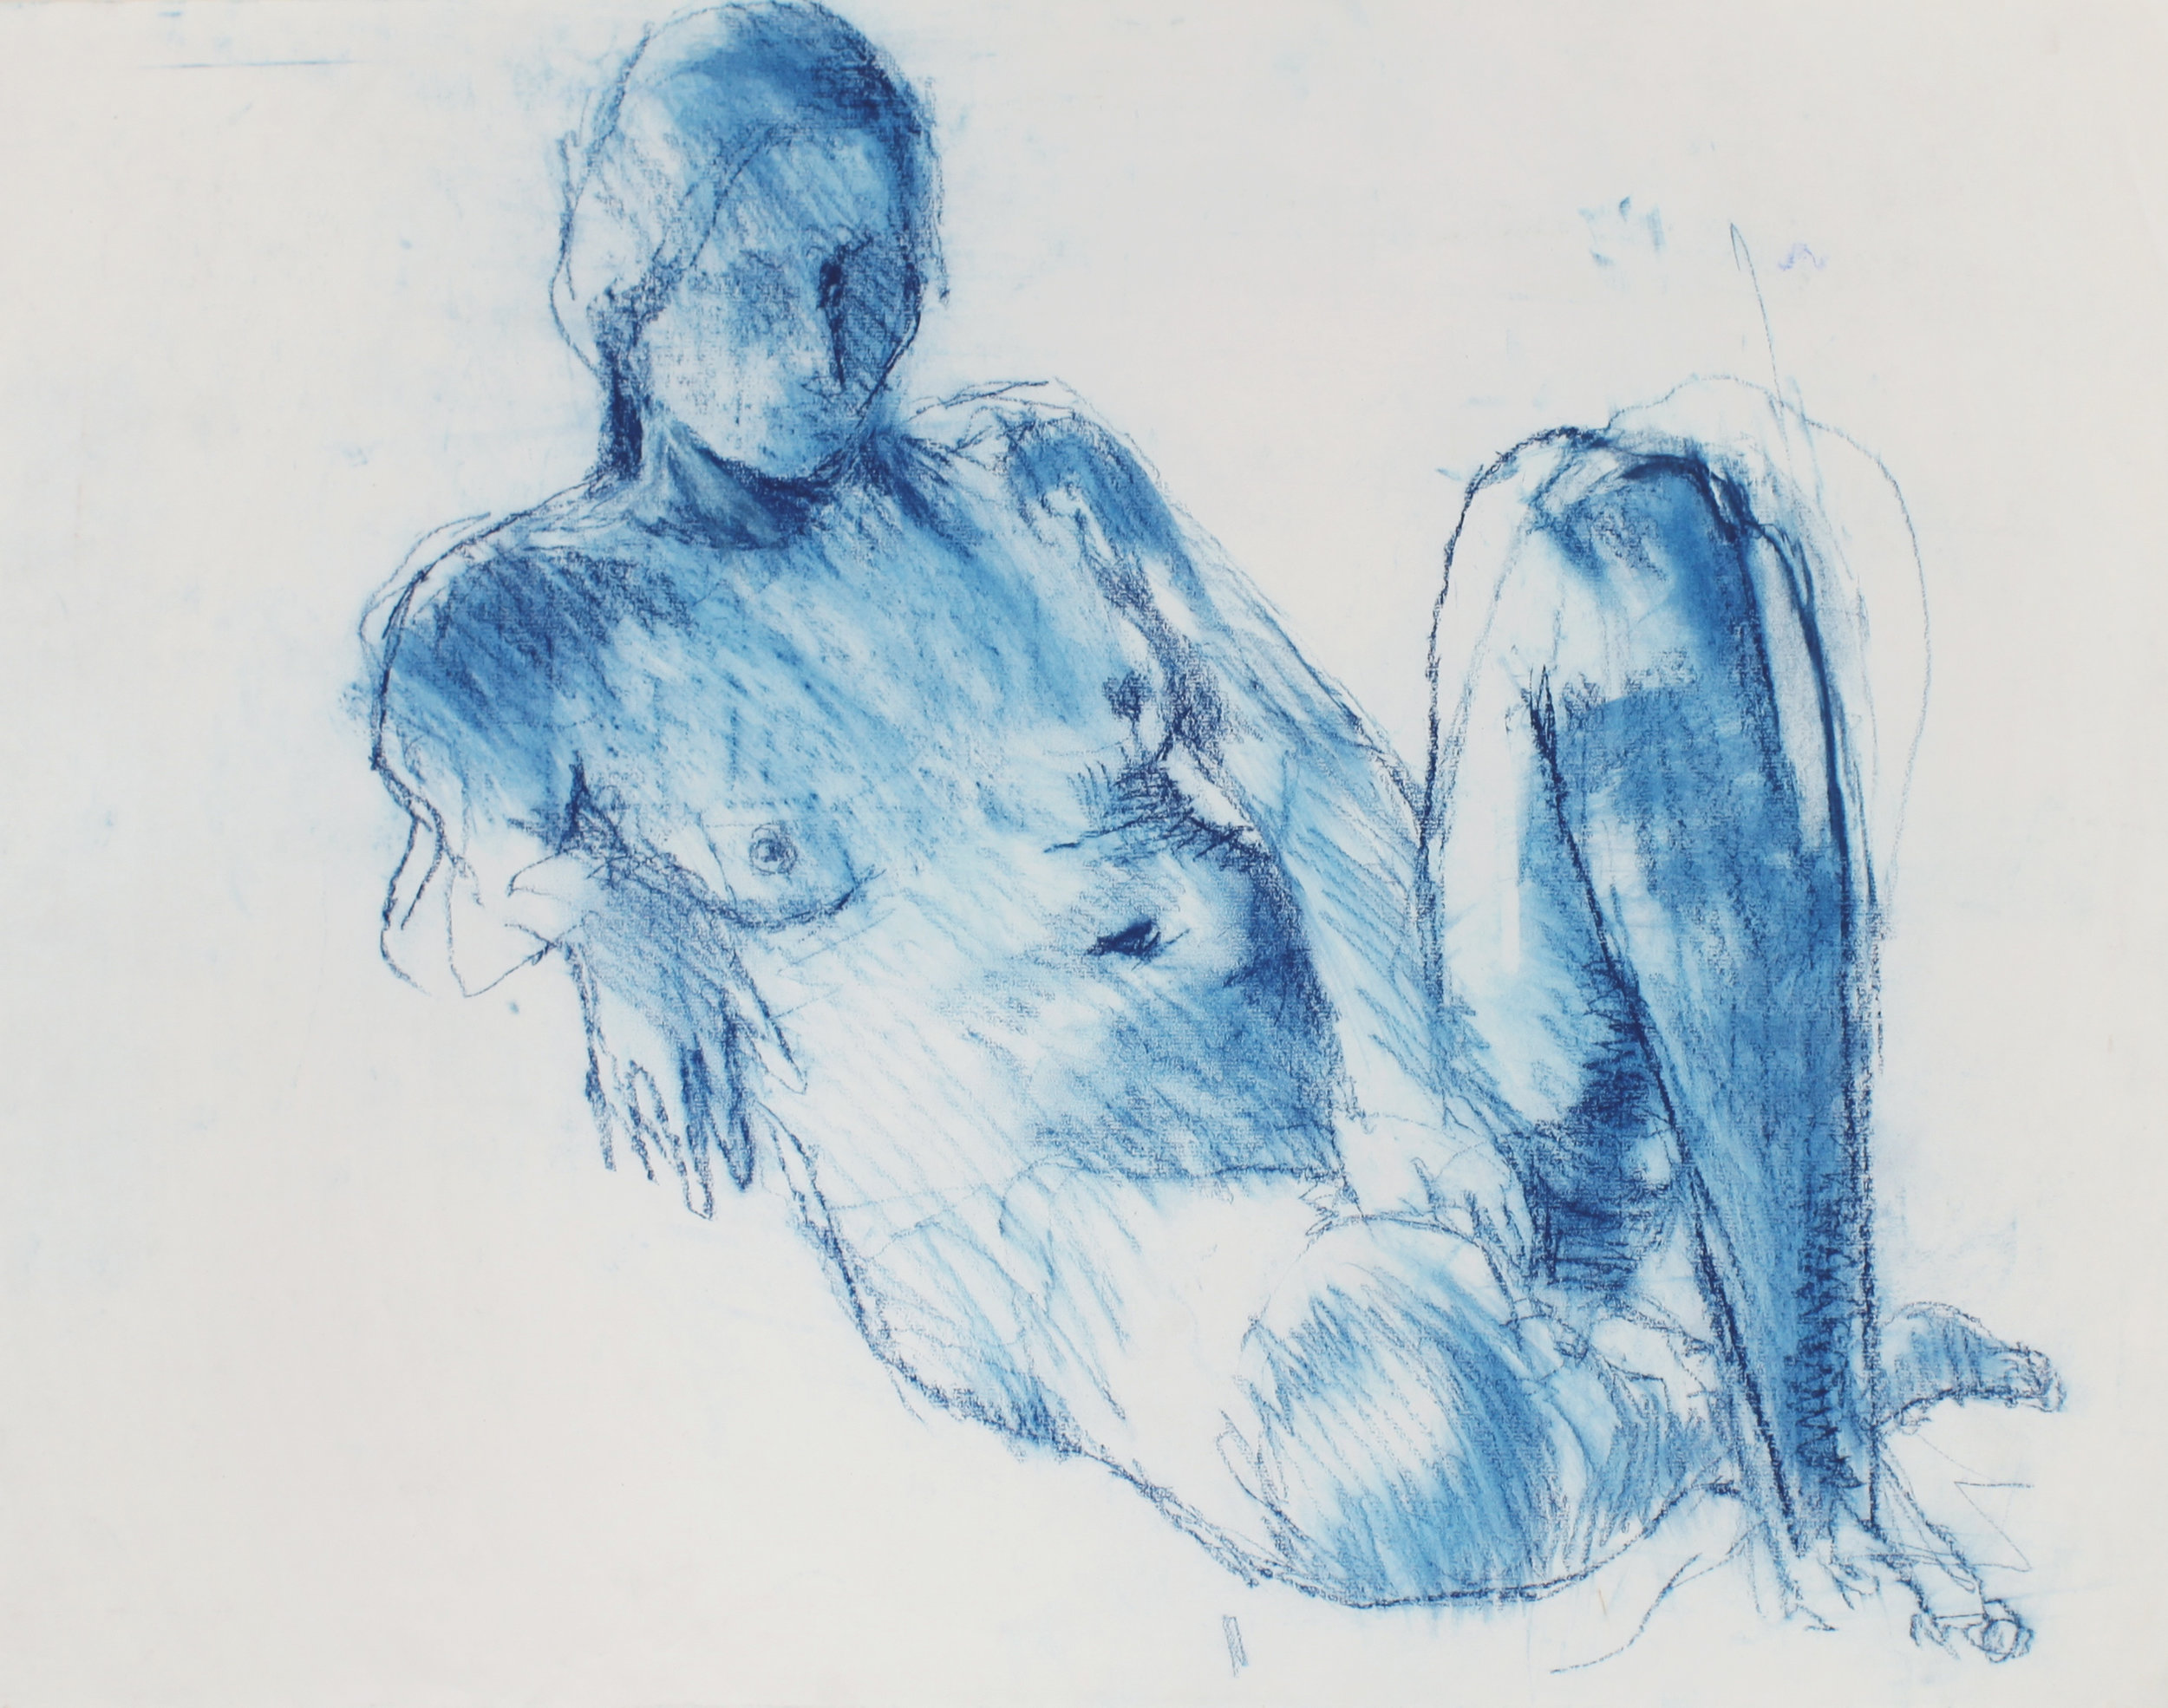 1980s_Reclining_Nude_with_Raised_Leg_(Blue)_blue_pastel_on_paper_30x22in_WPF467.jpg